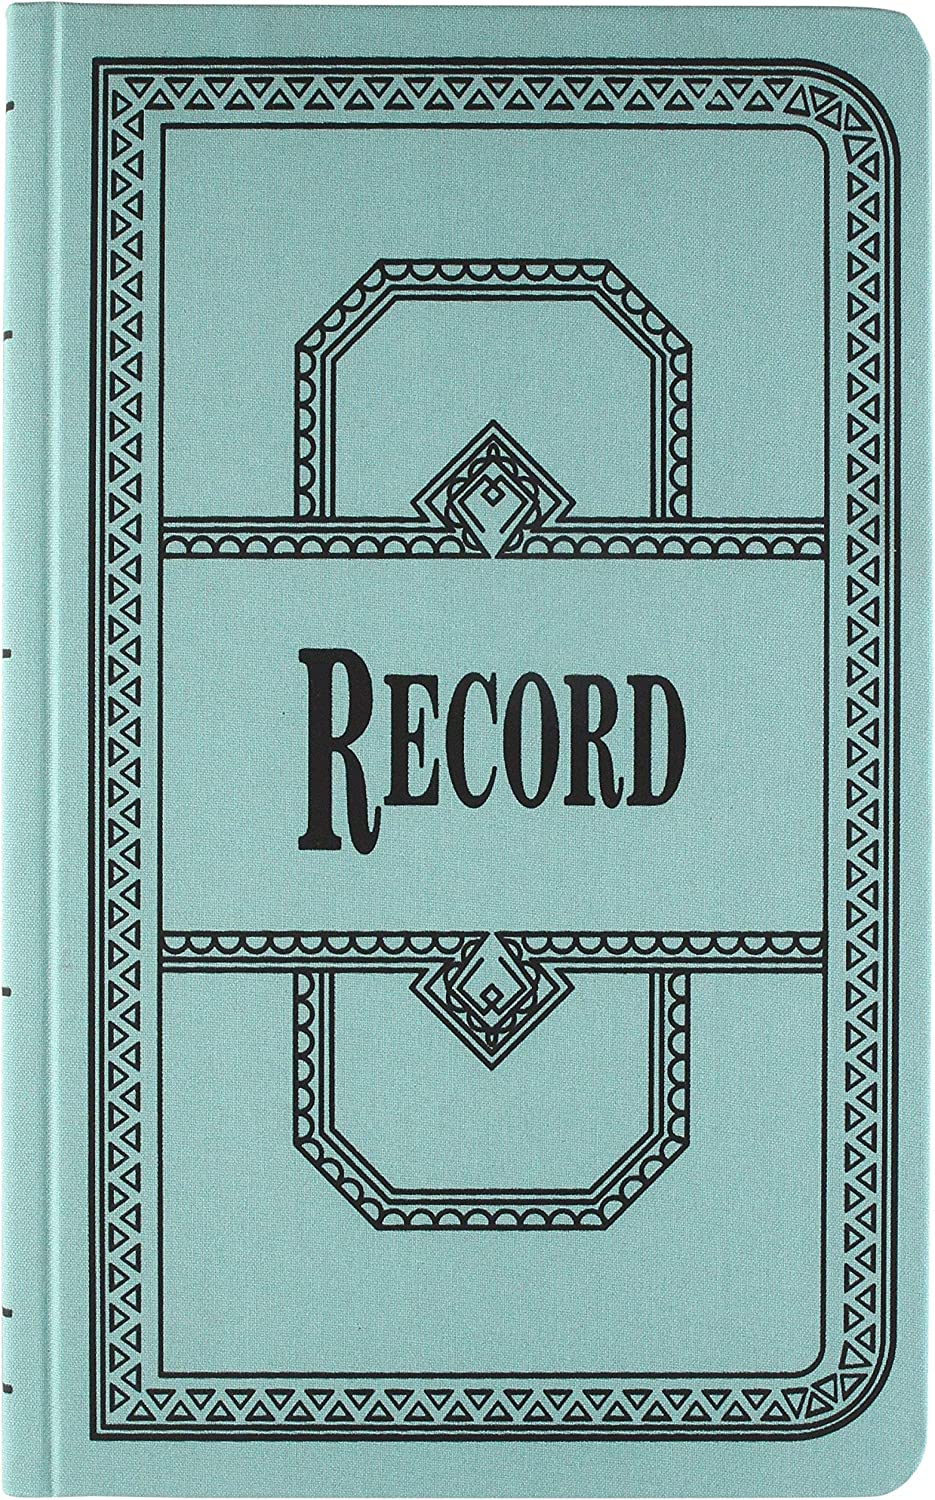 Blue Record Ruling 12-1//8ʺ x 7-5//8ʺ 66 Series Account Books 300 Pages New Version 66-300-R